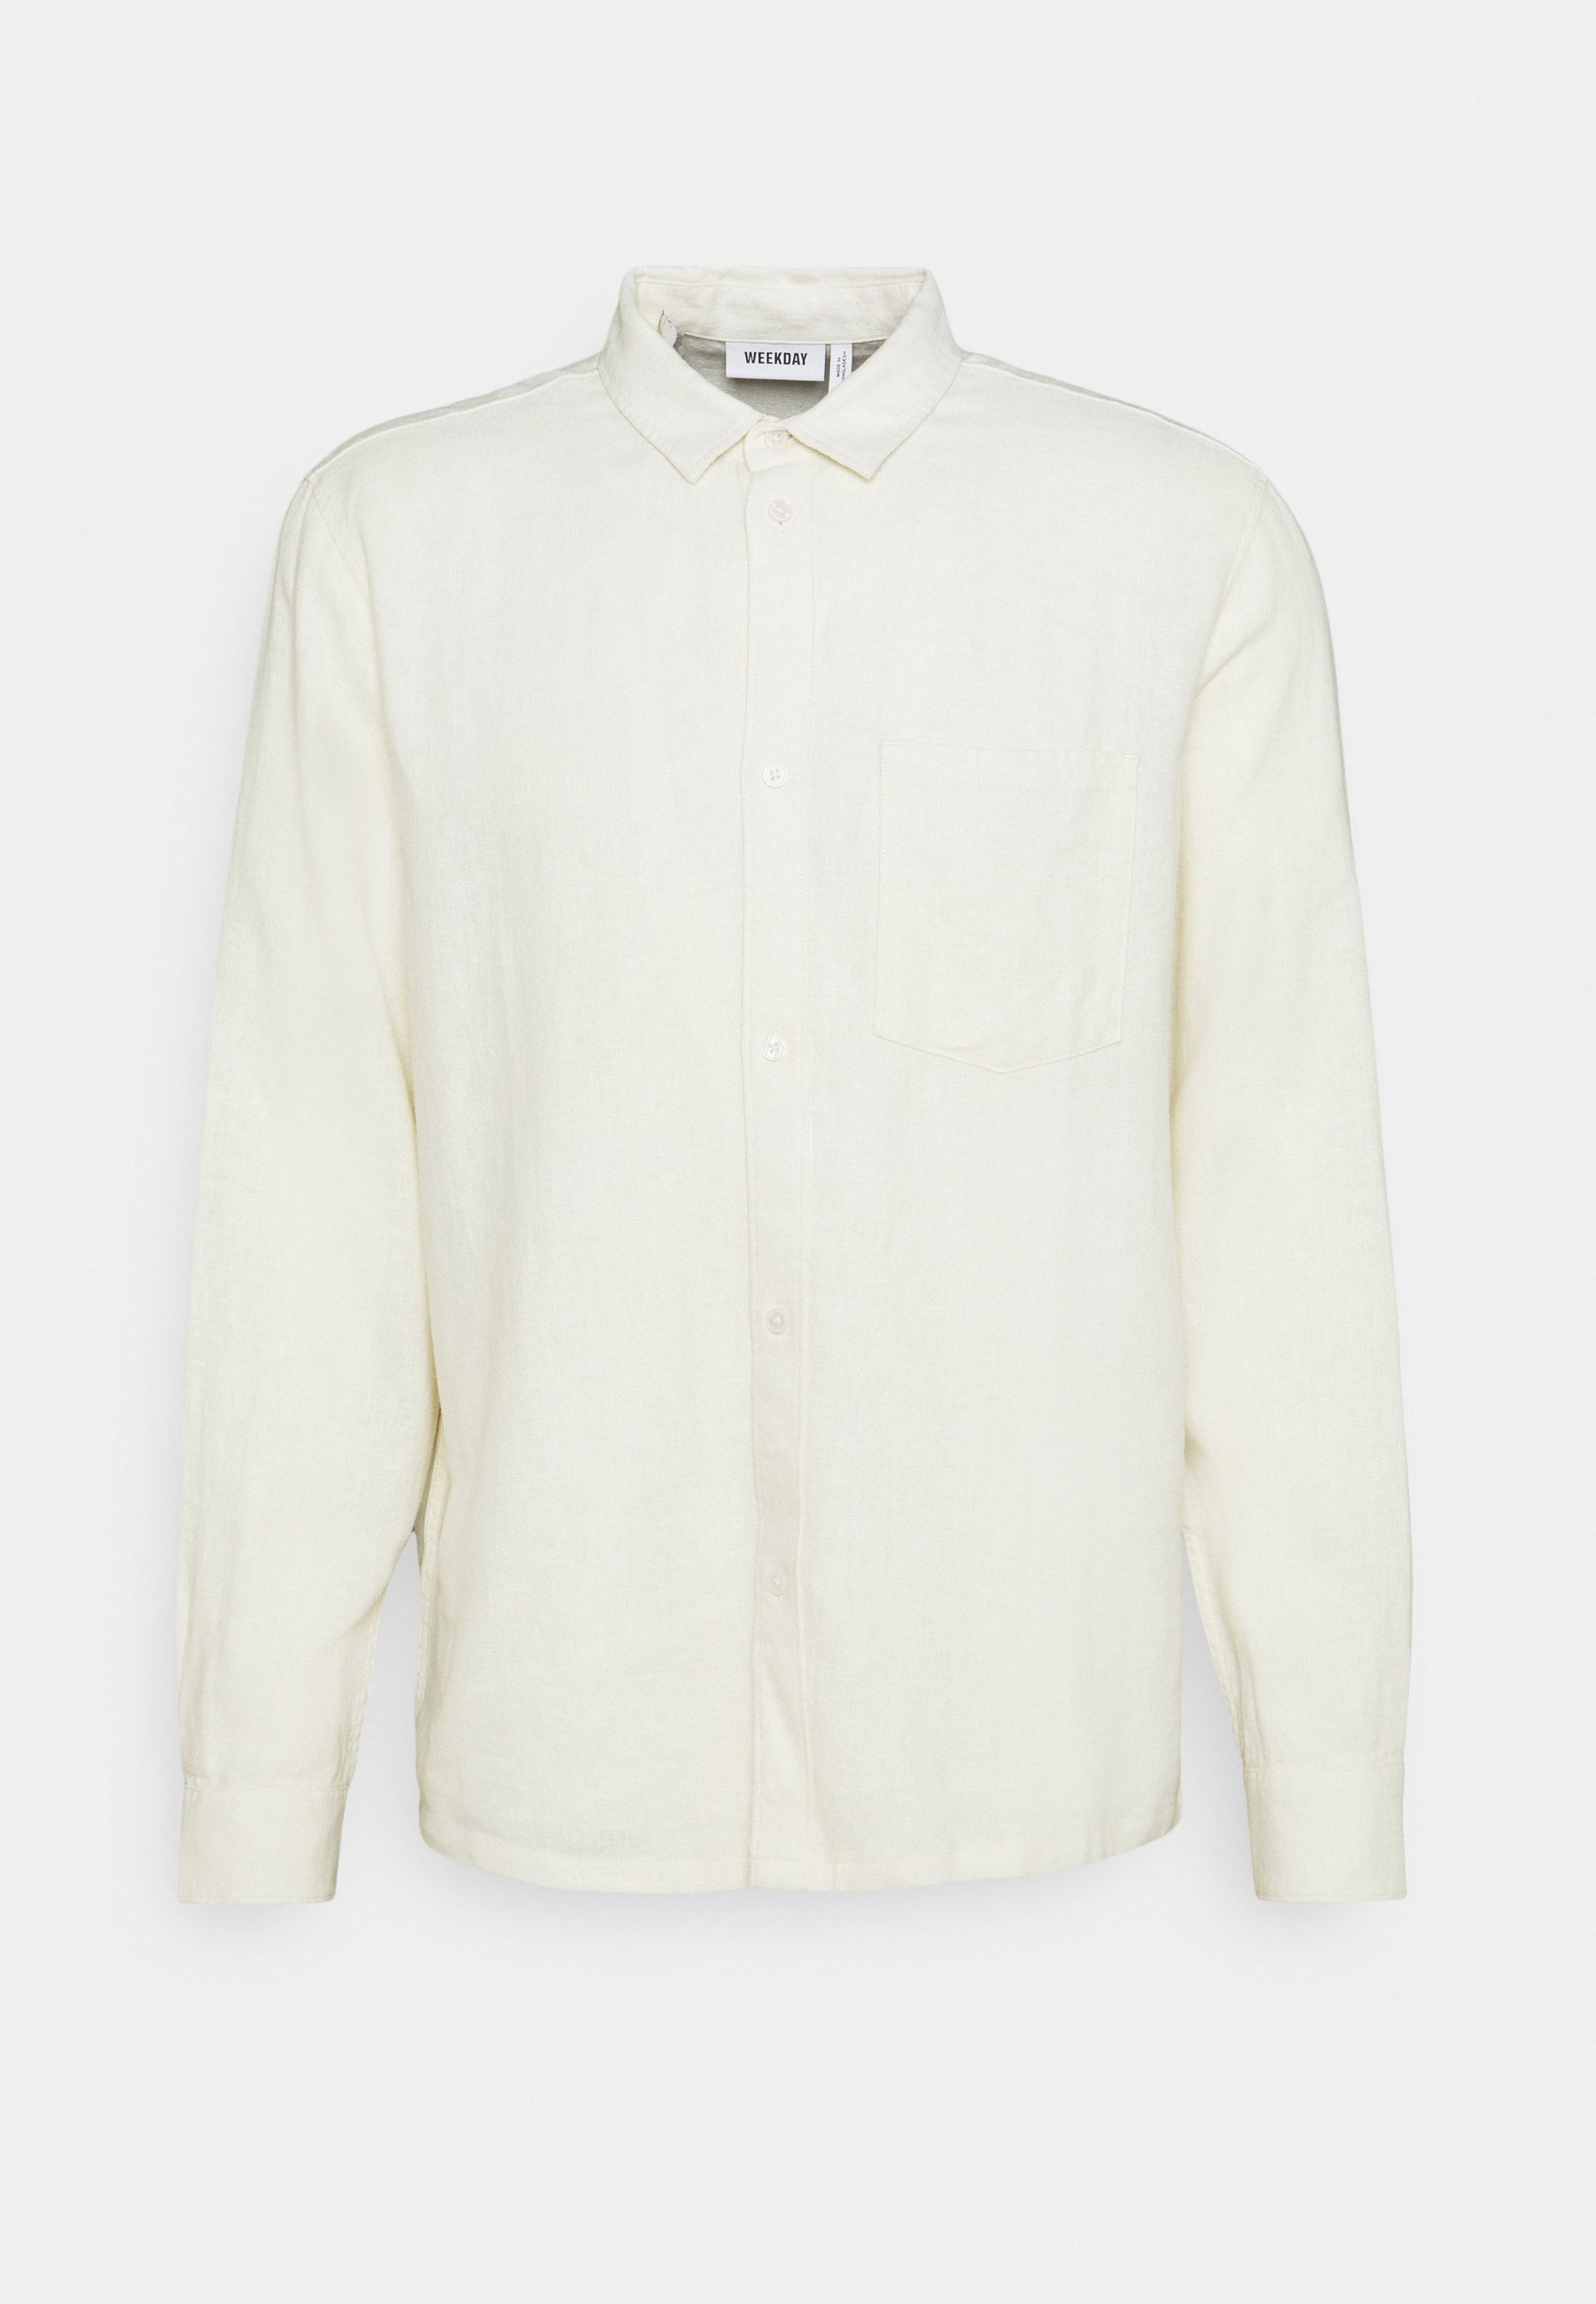 Homme WISE SHIRT - Chemise